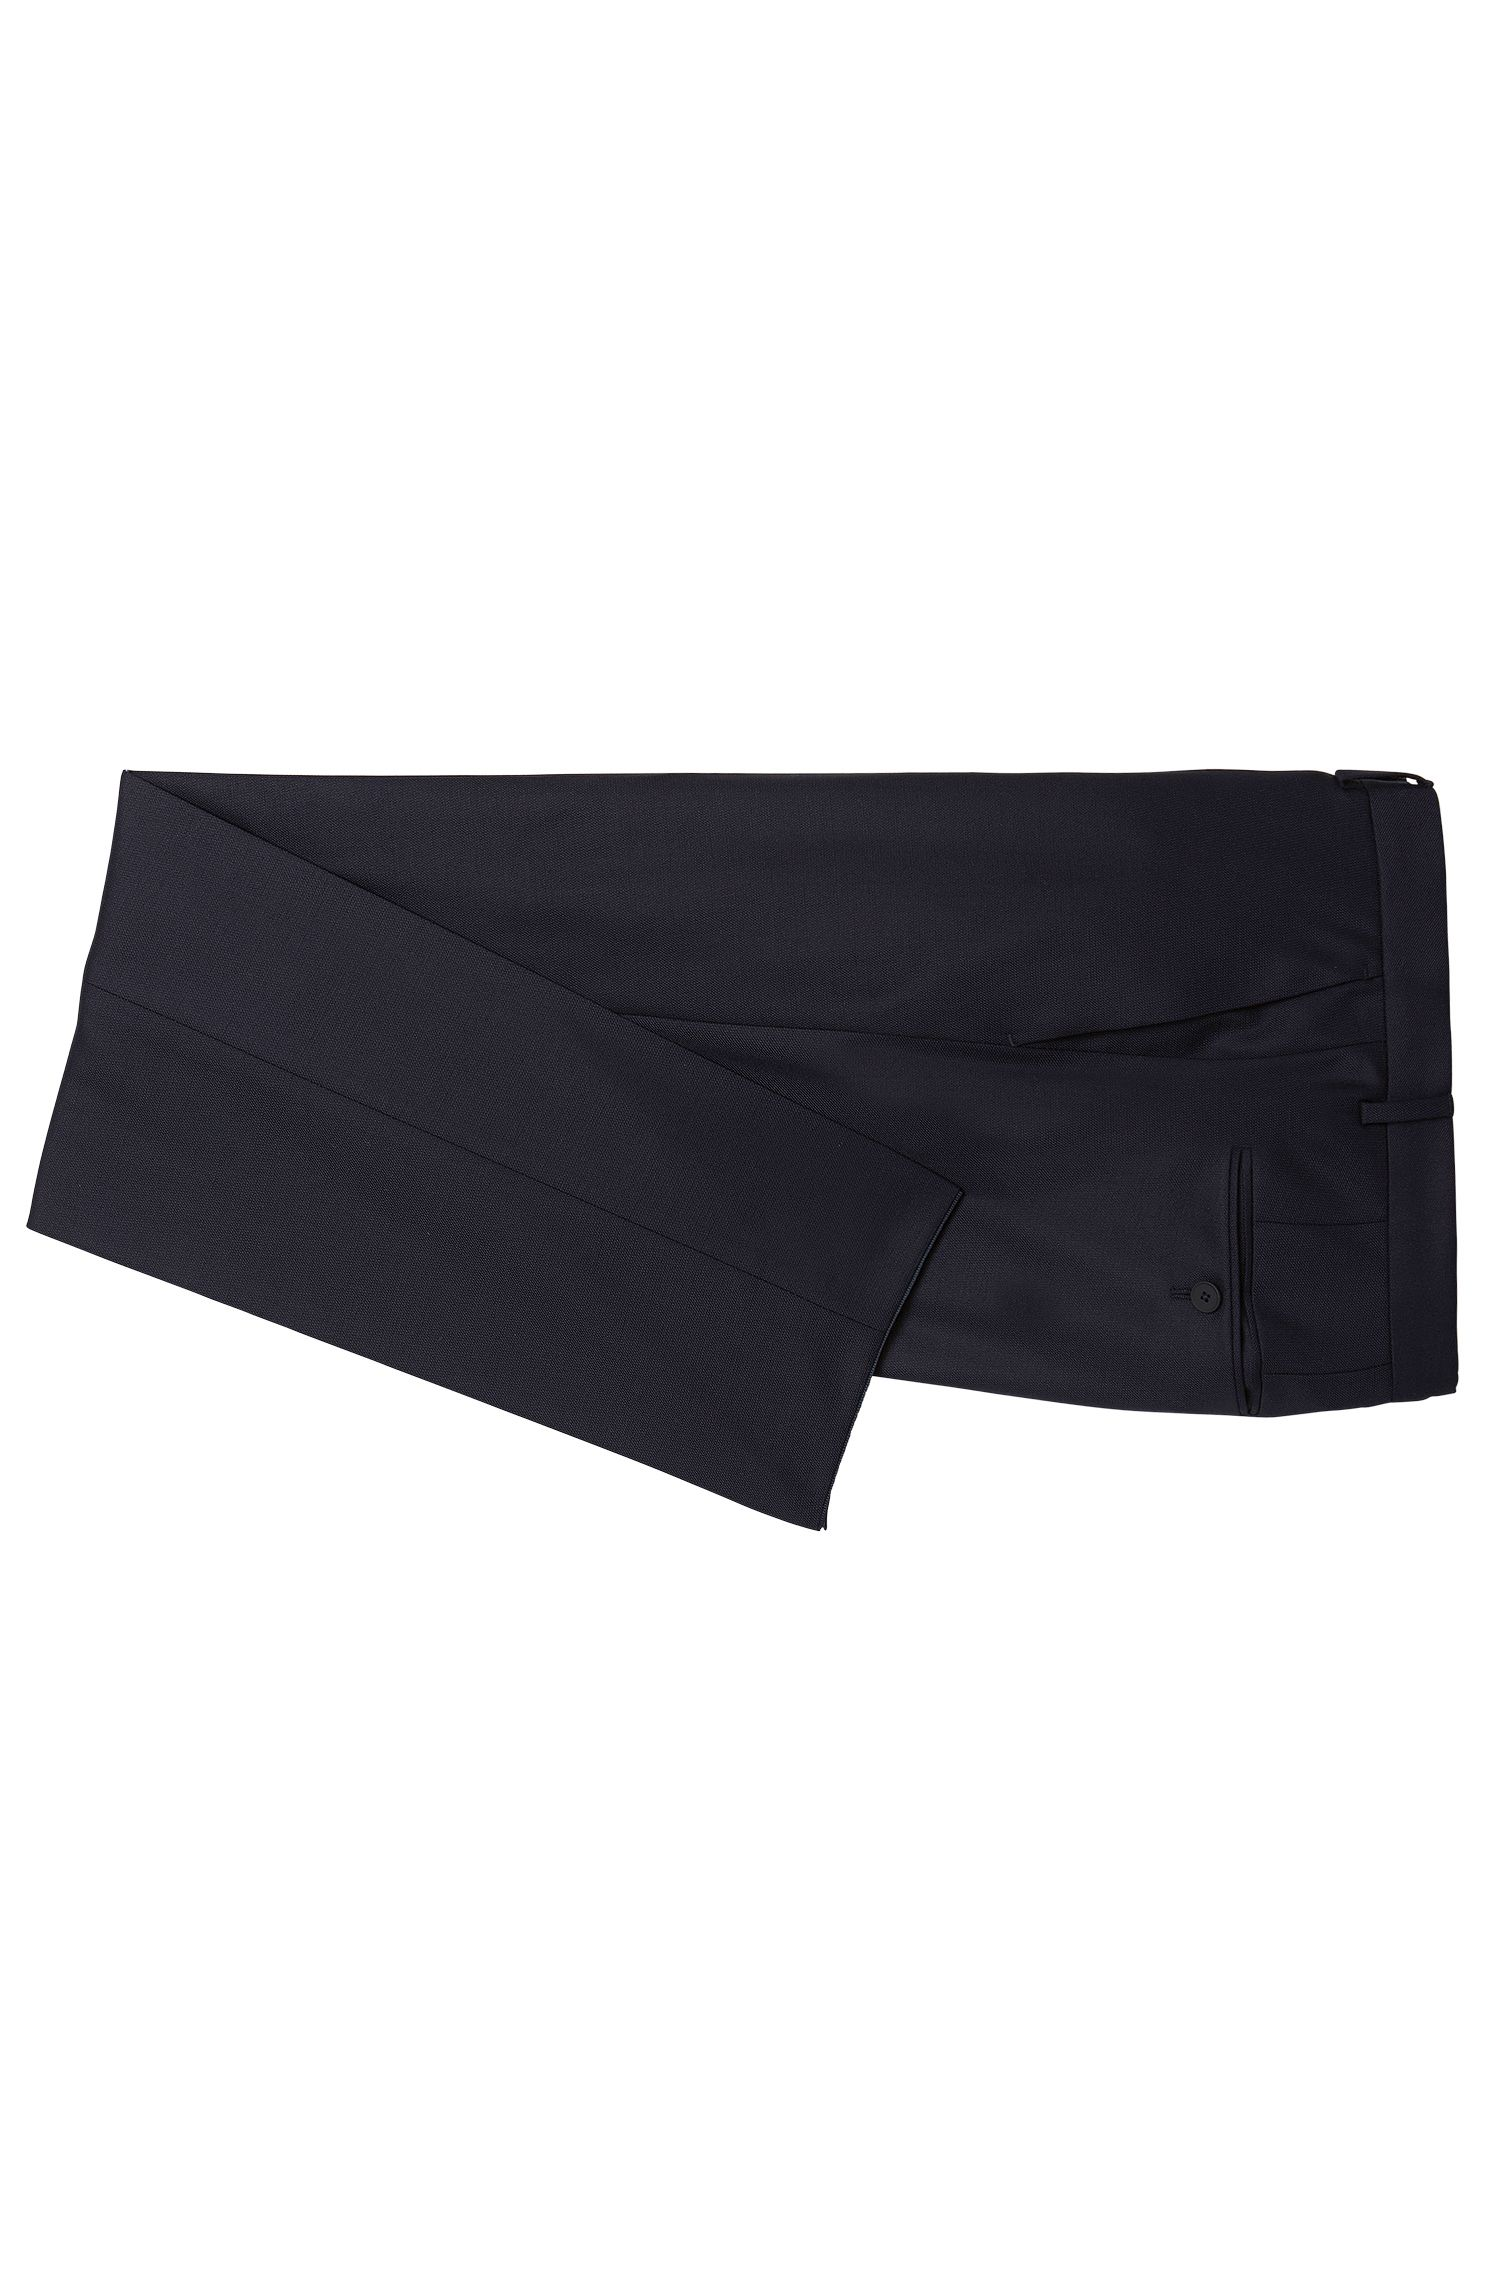 Costume Slim Fit Travel Line en laine vierge : « Nestro/Byte1 »